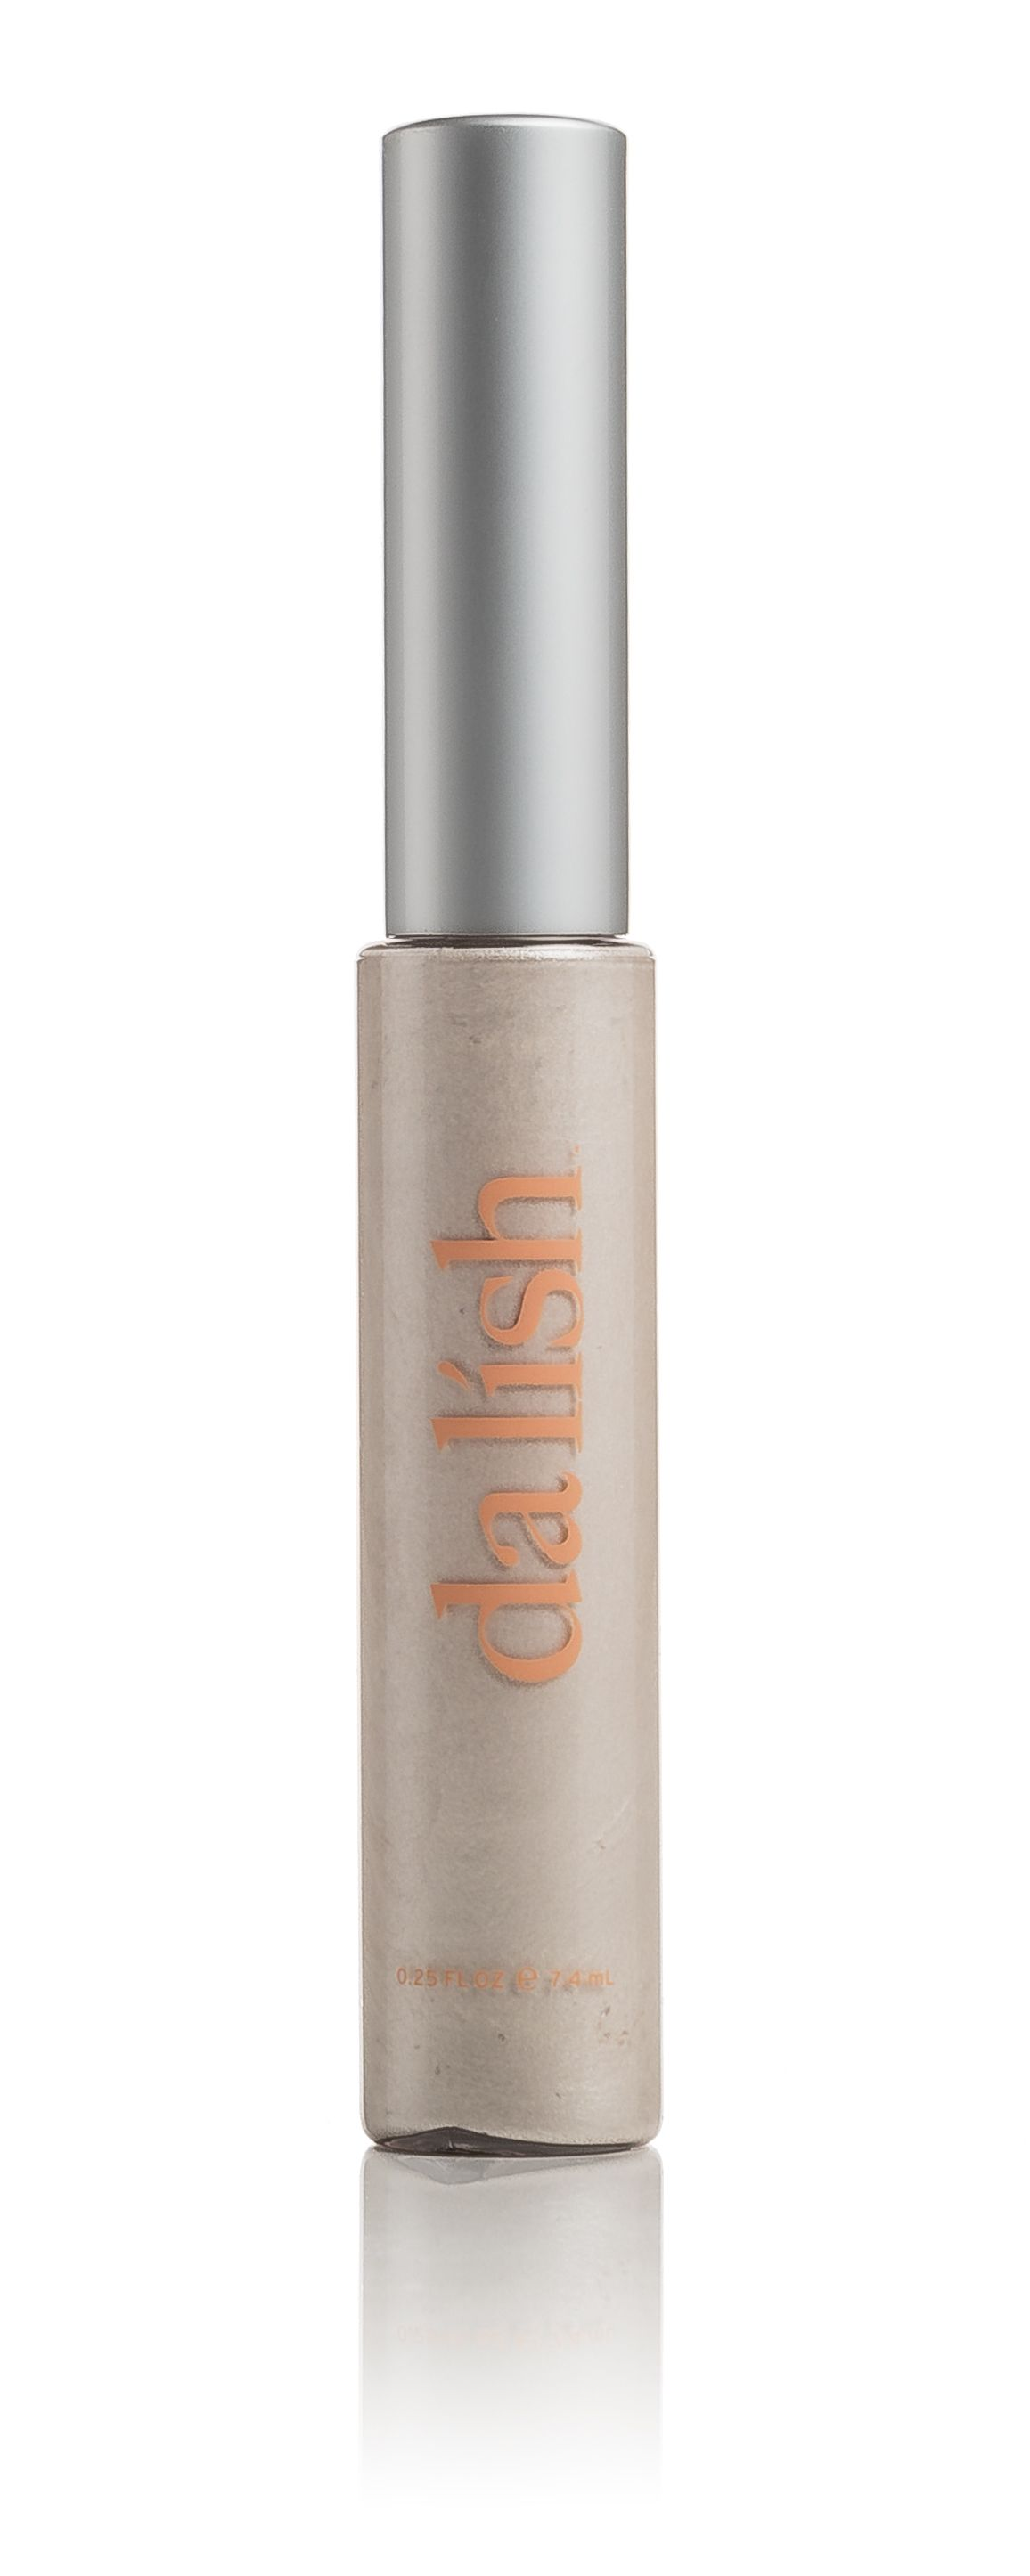 HO1 - Highlighter – very sheer and is a must for every woman. Apply to your temple, cheekbones, chin, upper lip, inner corner of your eyes and underneath your eyebrows. - See more at: http://www.dalishcosmetics.com/product/metallic-collection-eye-shadows-75-natural#sthash.v7VCqiVf.dpuf